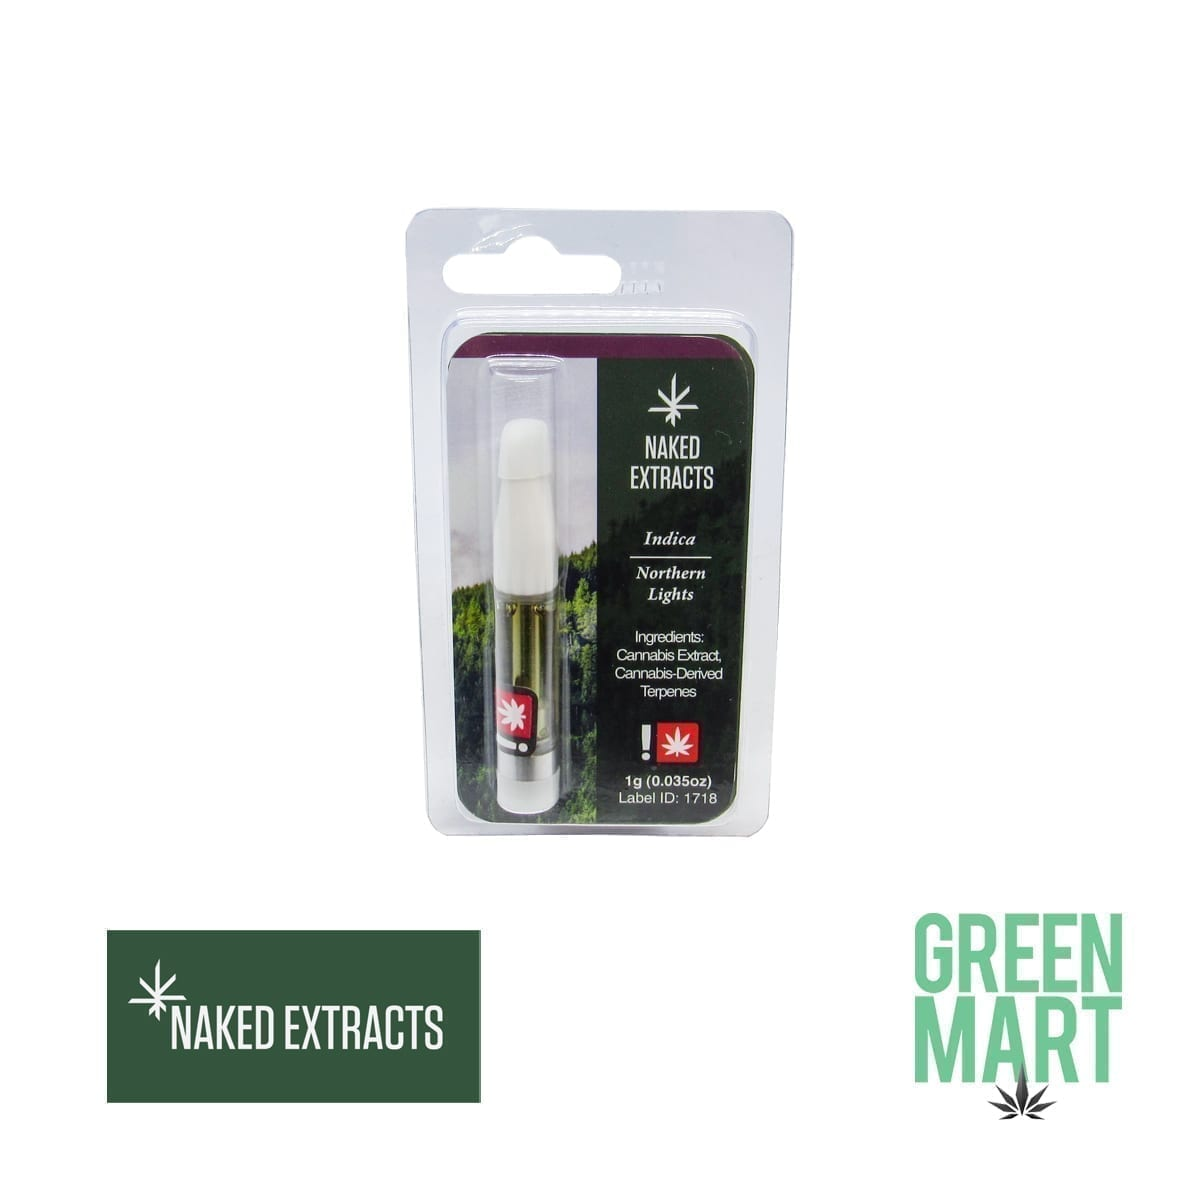 Naked Extracts Northern Lights Indica Cartridge